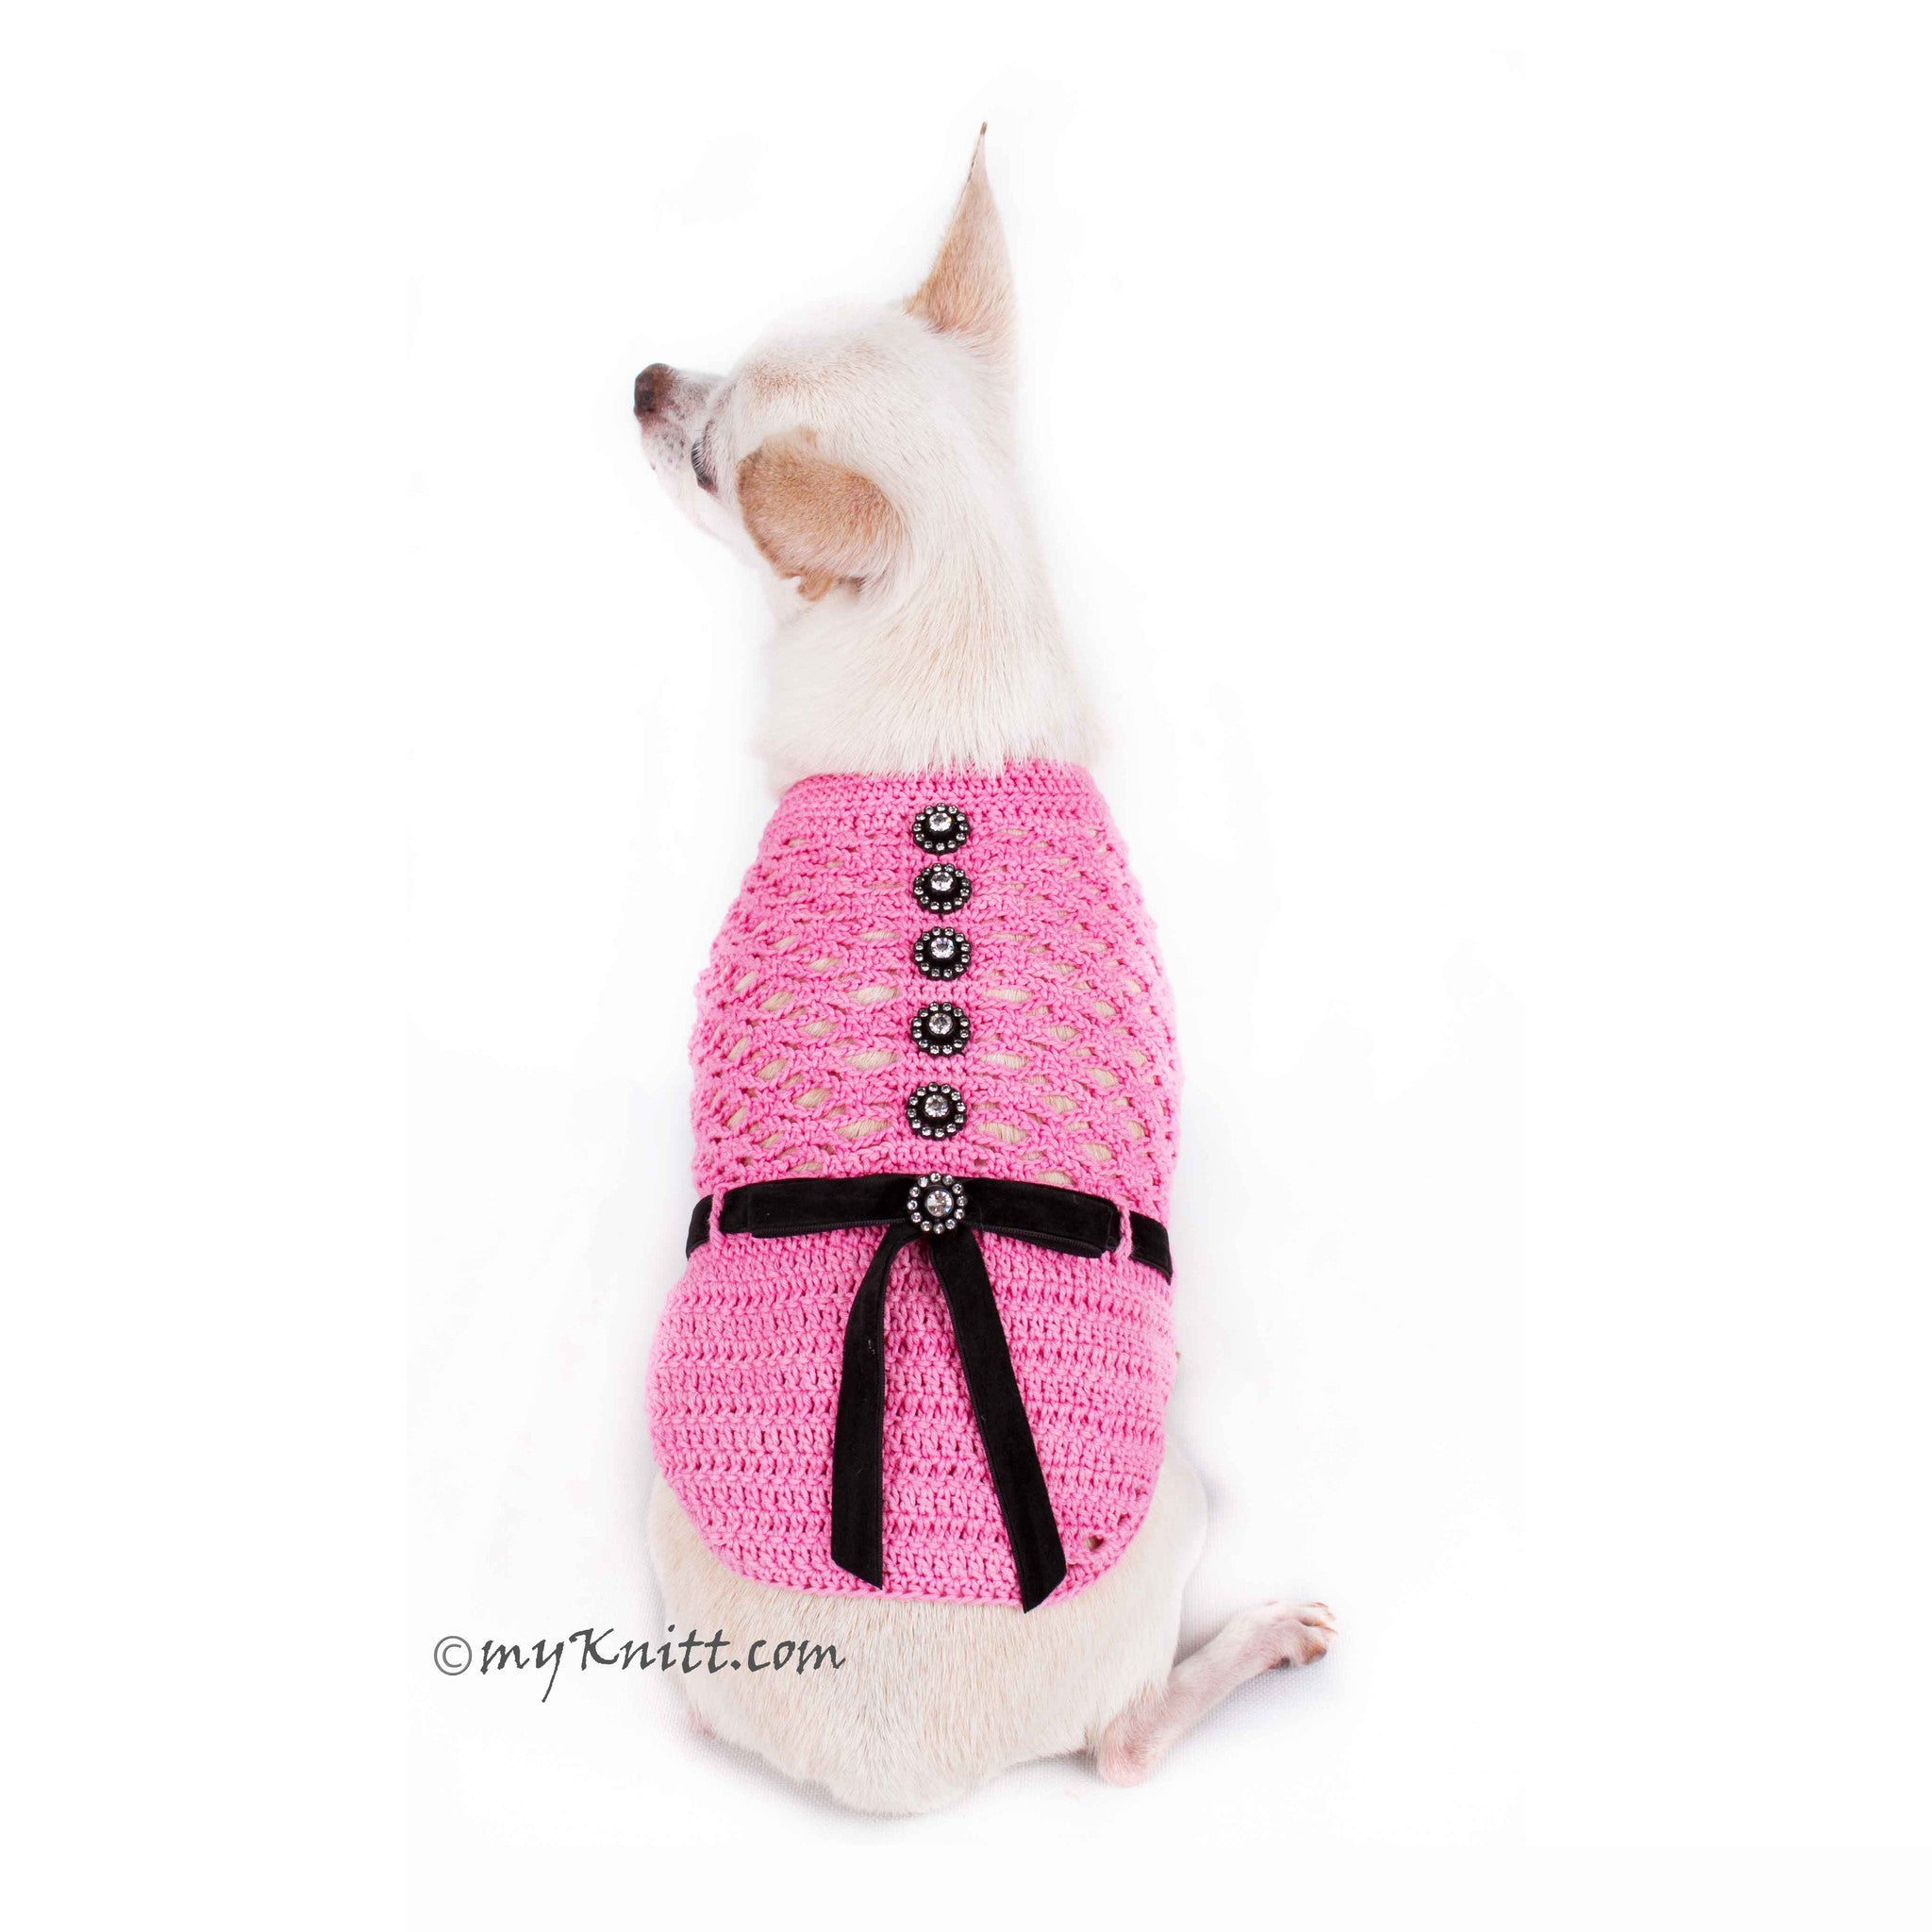 Beautiful Pink Dog Dress with Black Ribbon and Crystal Apparel DF84 by Myknitt